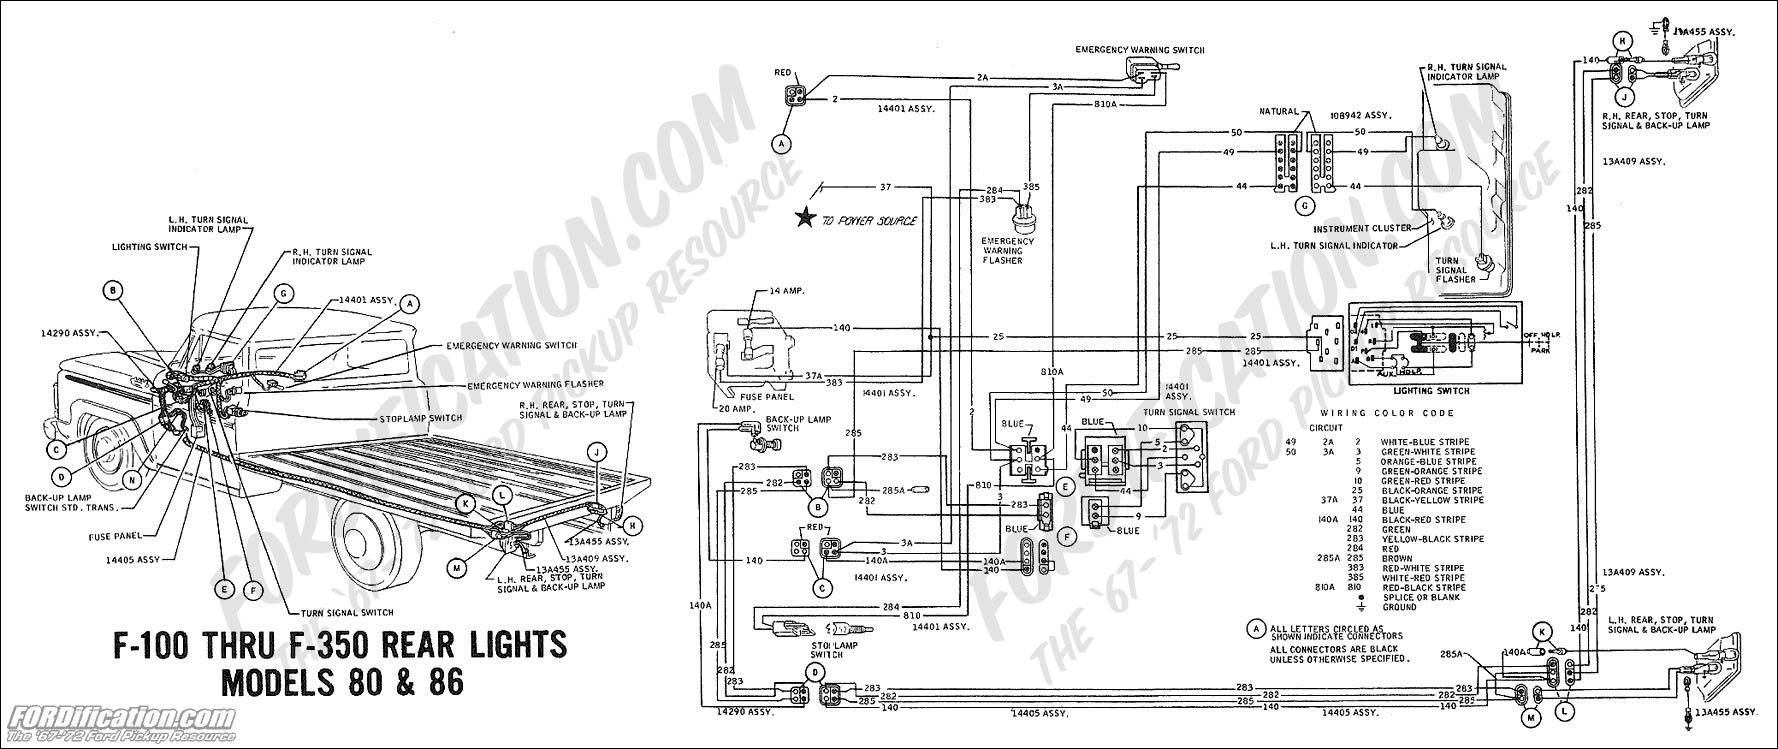 wiring_69rearlights mdls80 86 ford truck technical drawings and schematics section h wiring ford wiring diagrams at creativeand.co